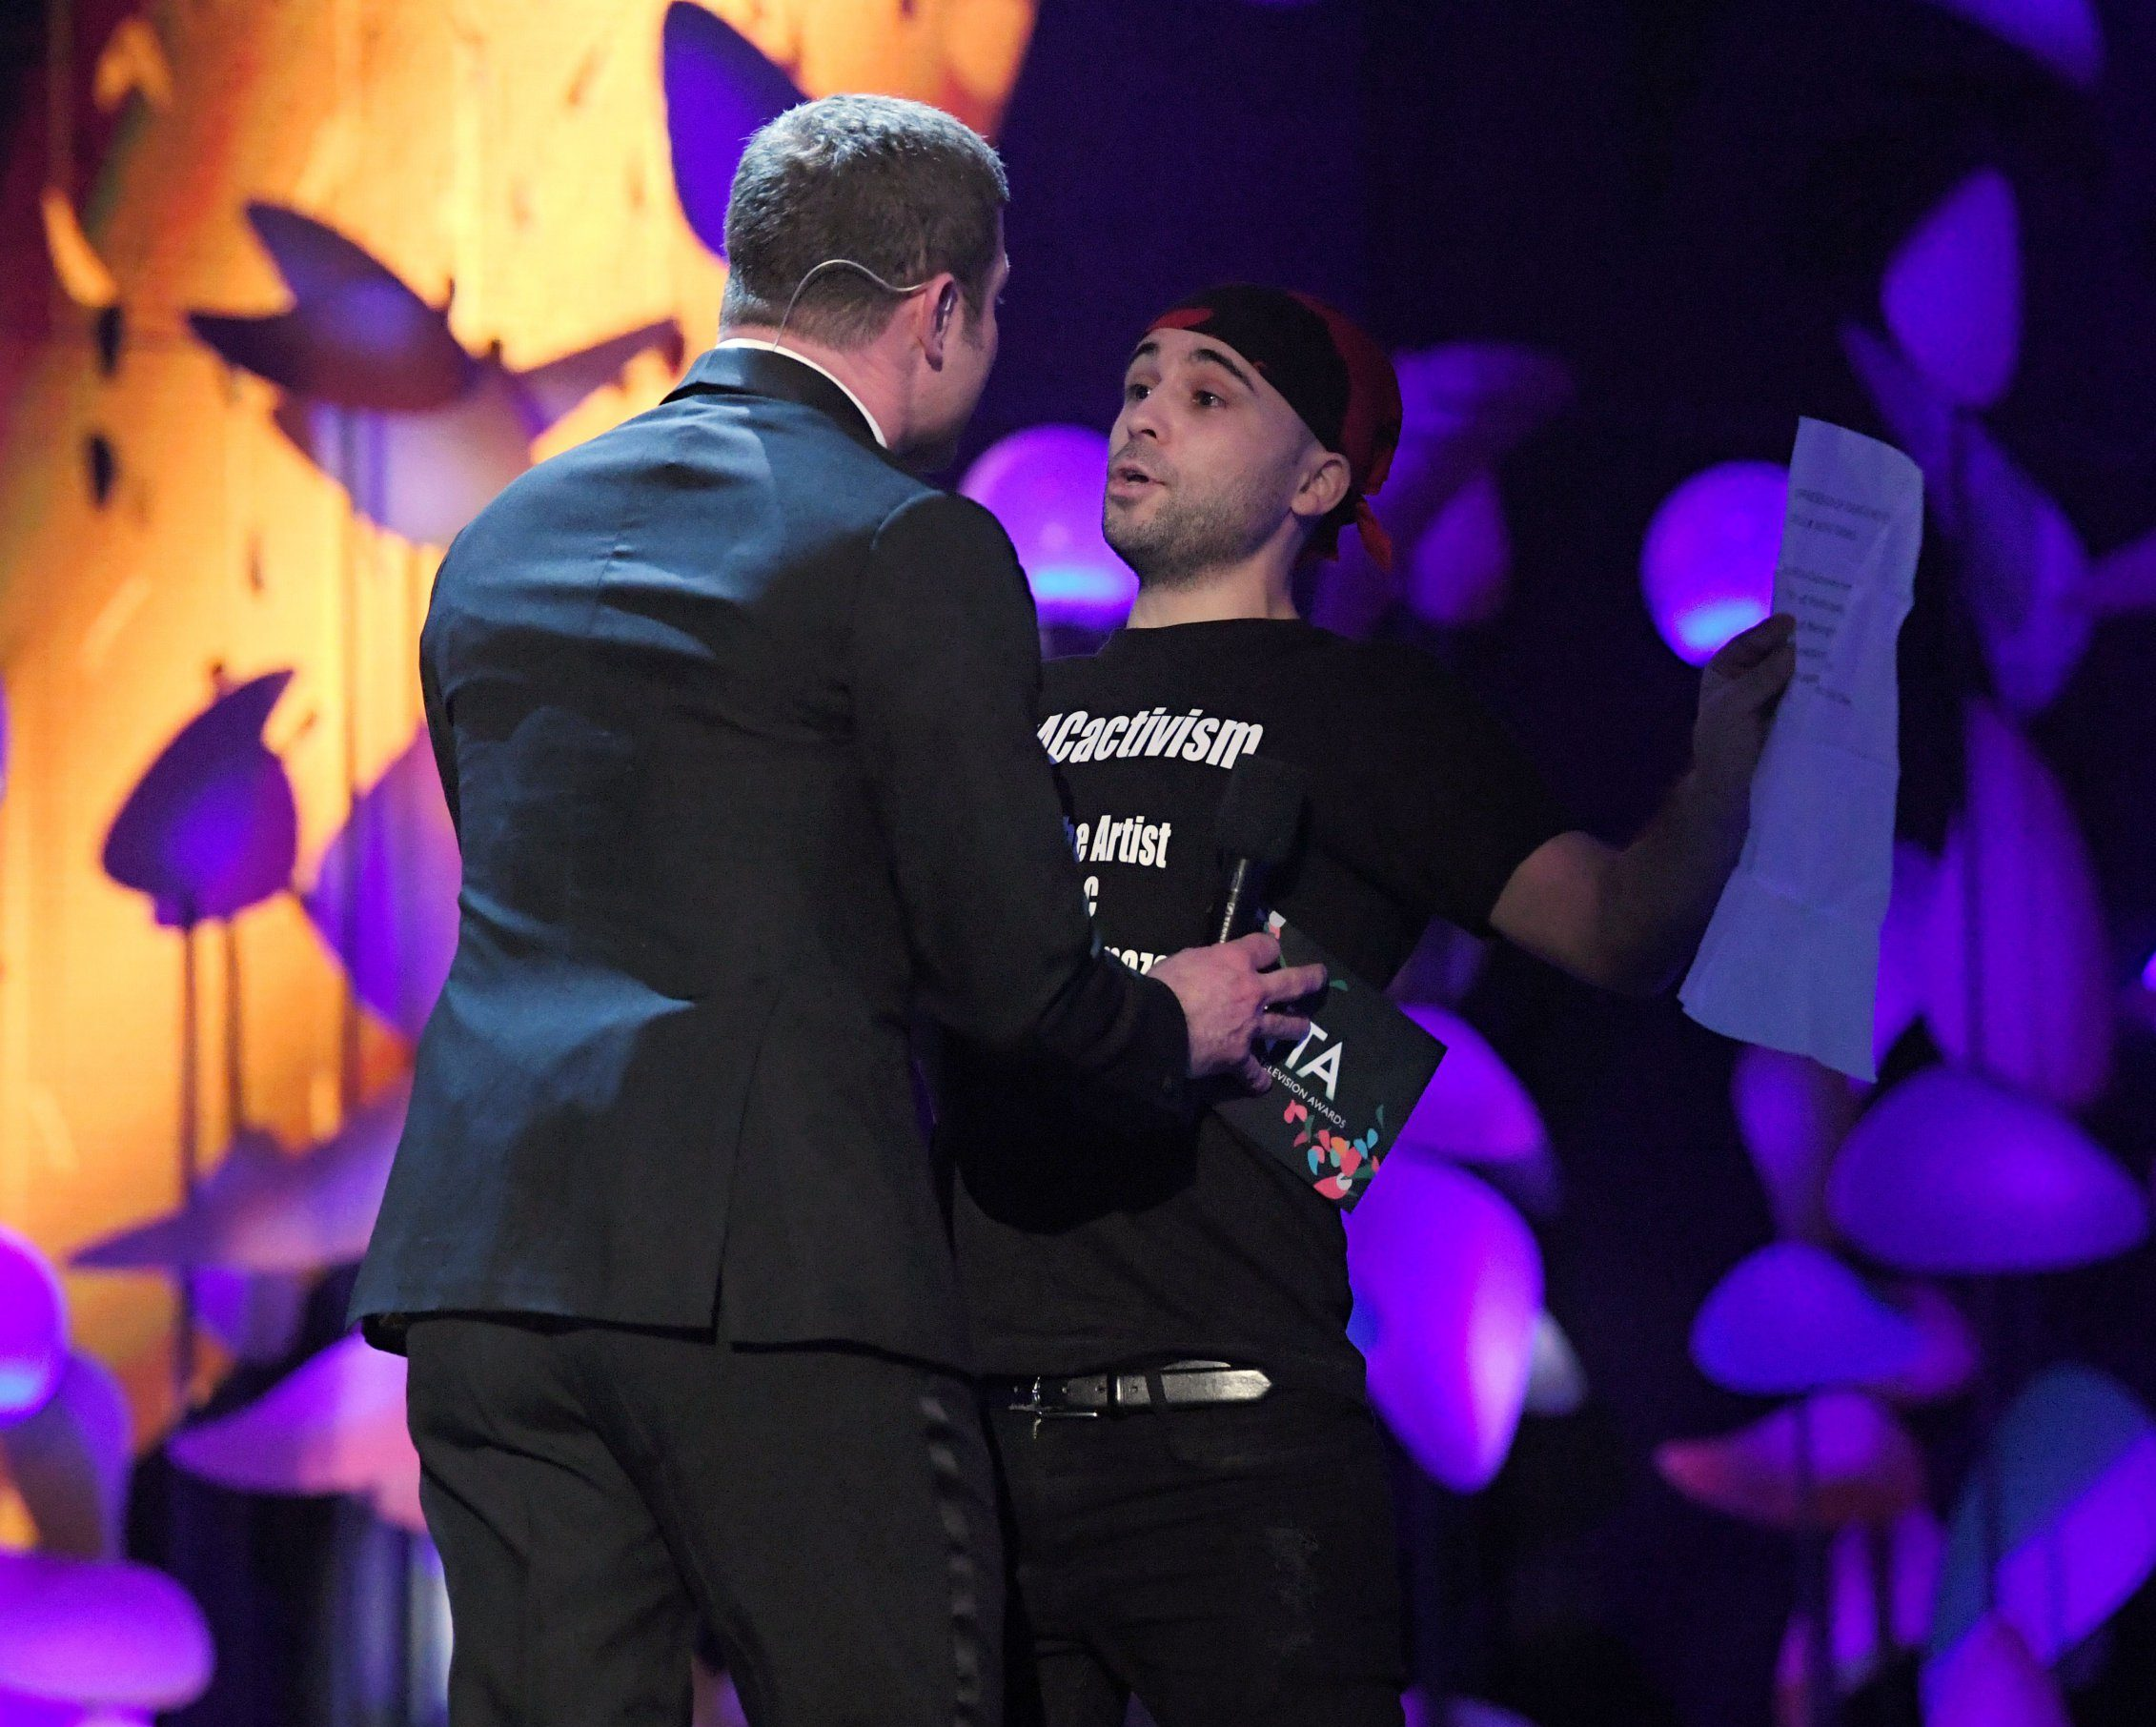 NTAs stage invader's identity revealed as 'intellectual rebel' who crashed The Voice final